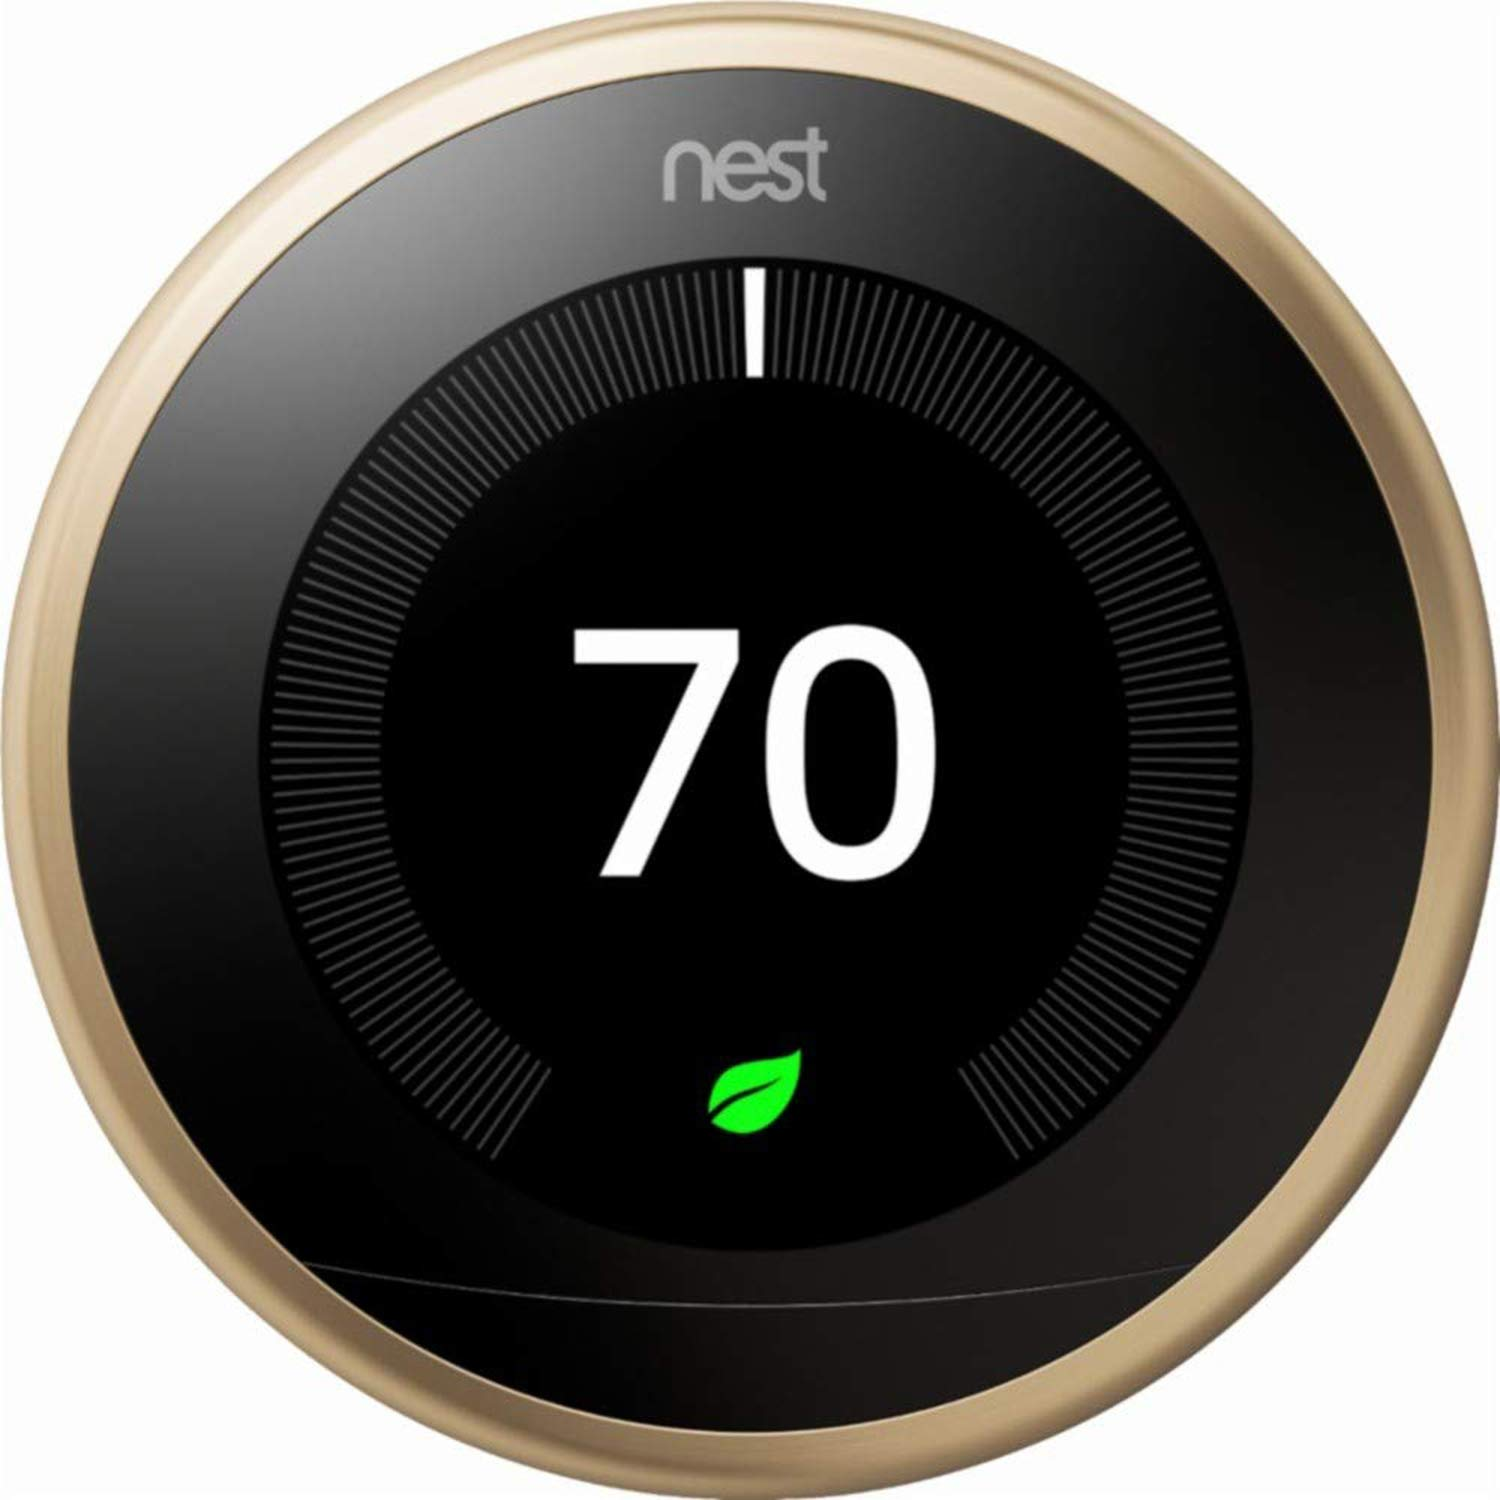 nest gen 3 learning thermostat $139 amazon. get it while its hot hot hot. - brasssssss only. $139.99